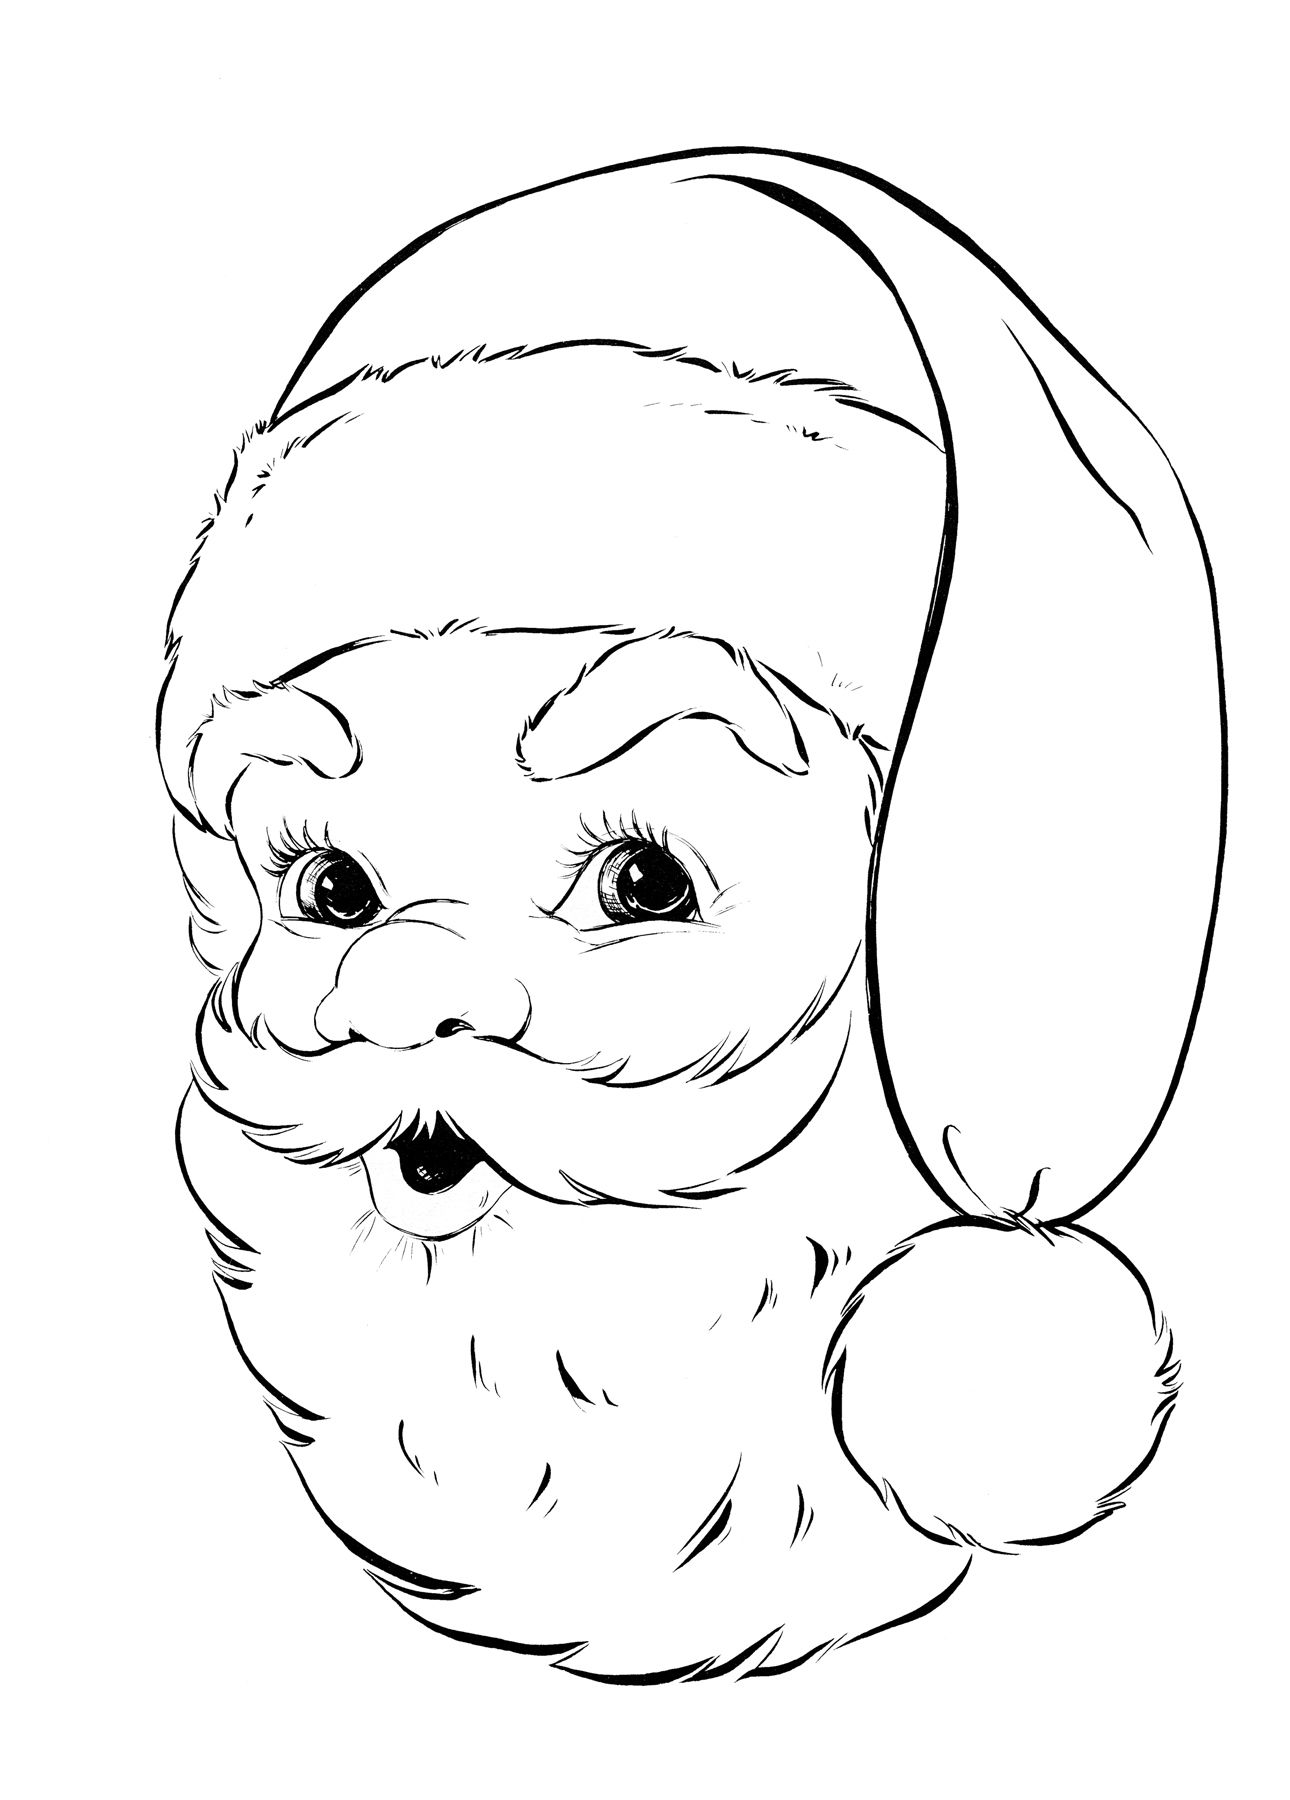 Santa Face Coloring Page With 50 Free Activities For Children Digi Stamps Pinterest